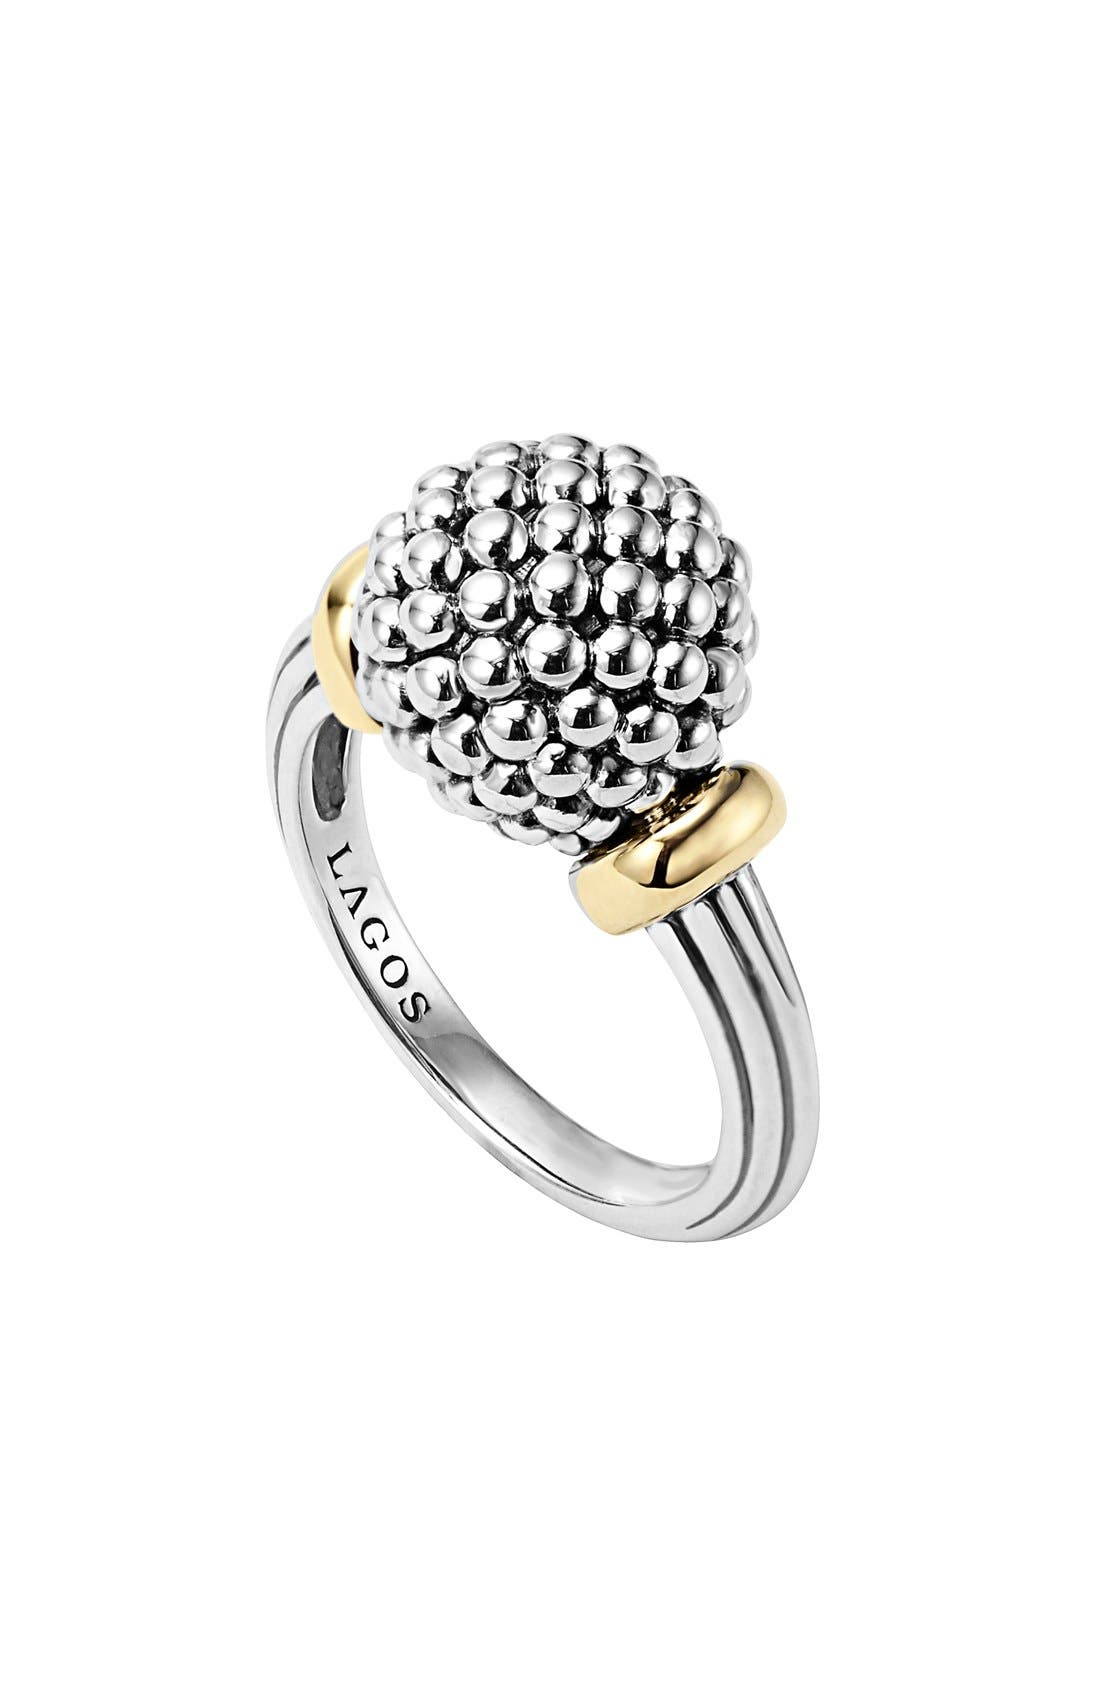 Main Image - LAGOS Caviar Forever Medium Dome Ring